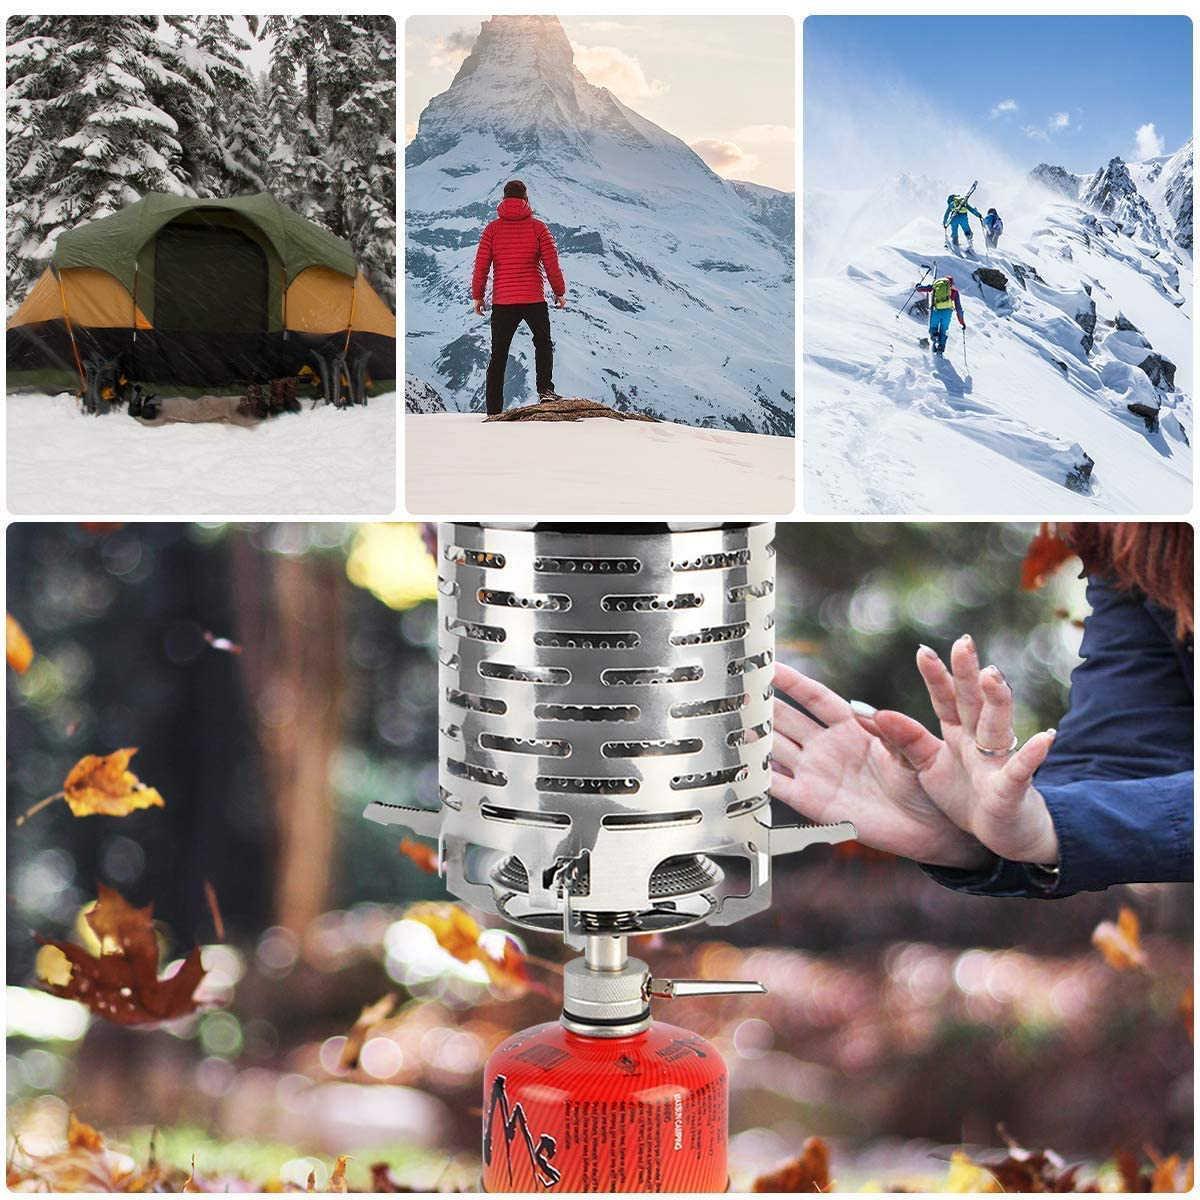 ZONSUSE Camping Mini Heater,Portable Camping Stove Heater